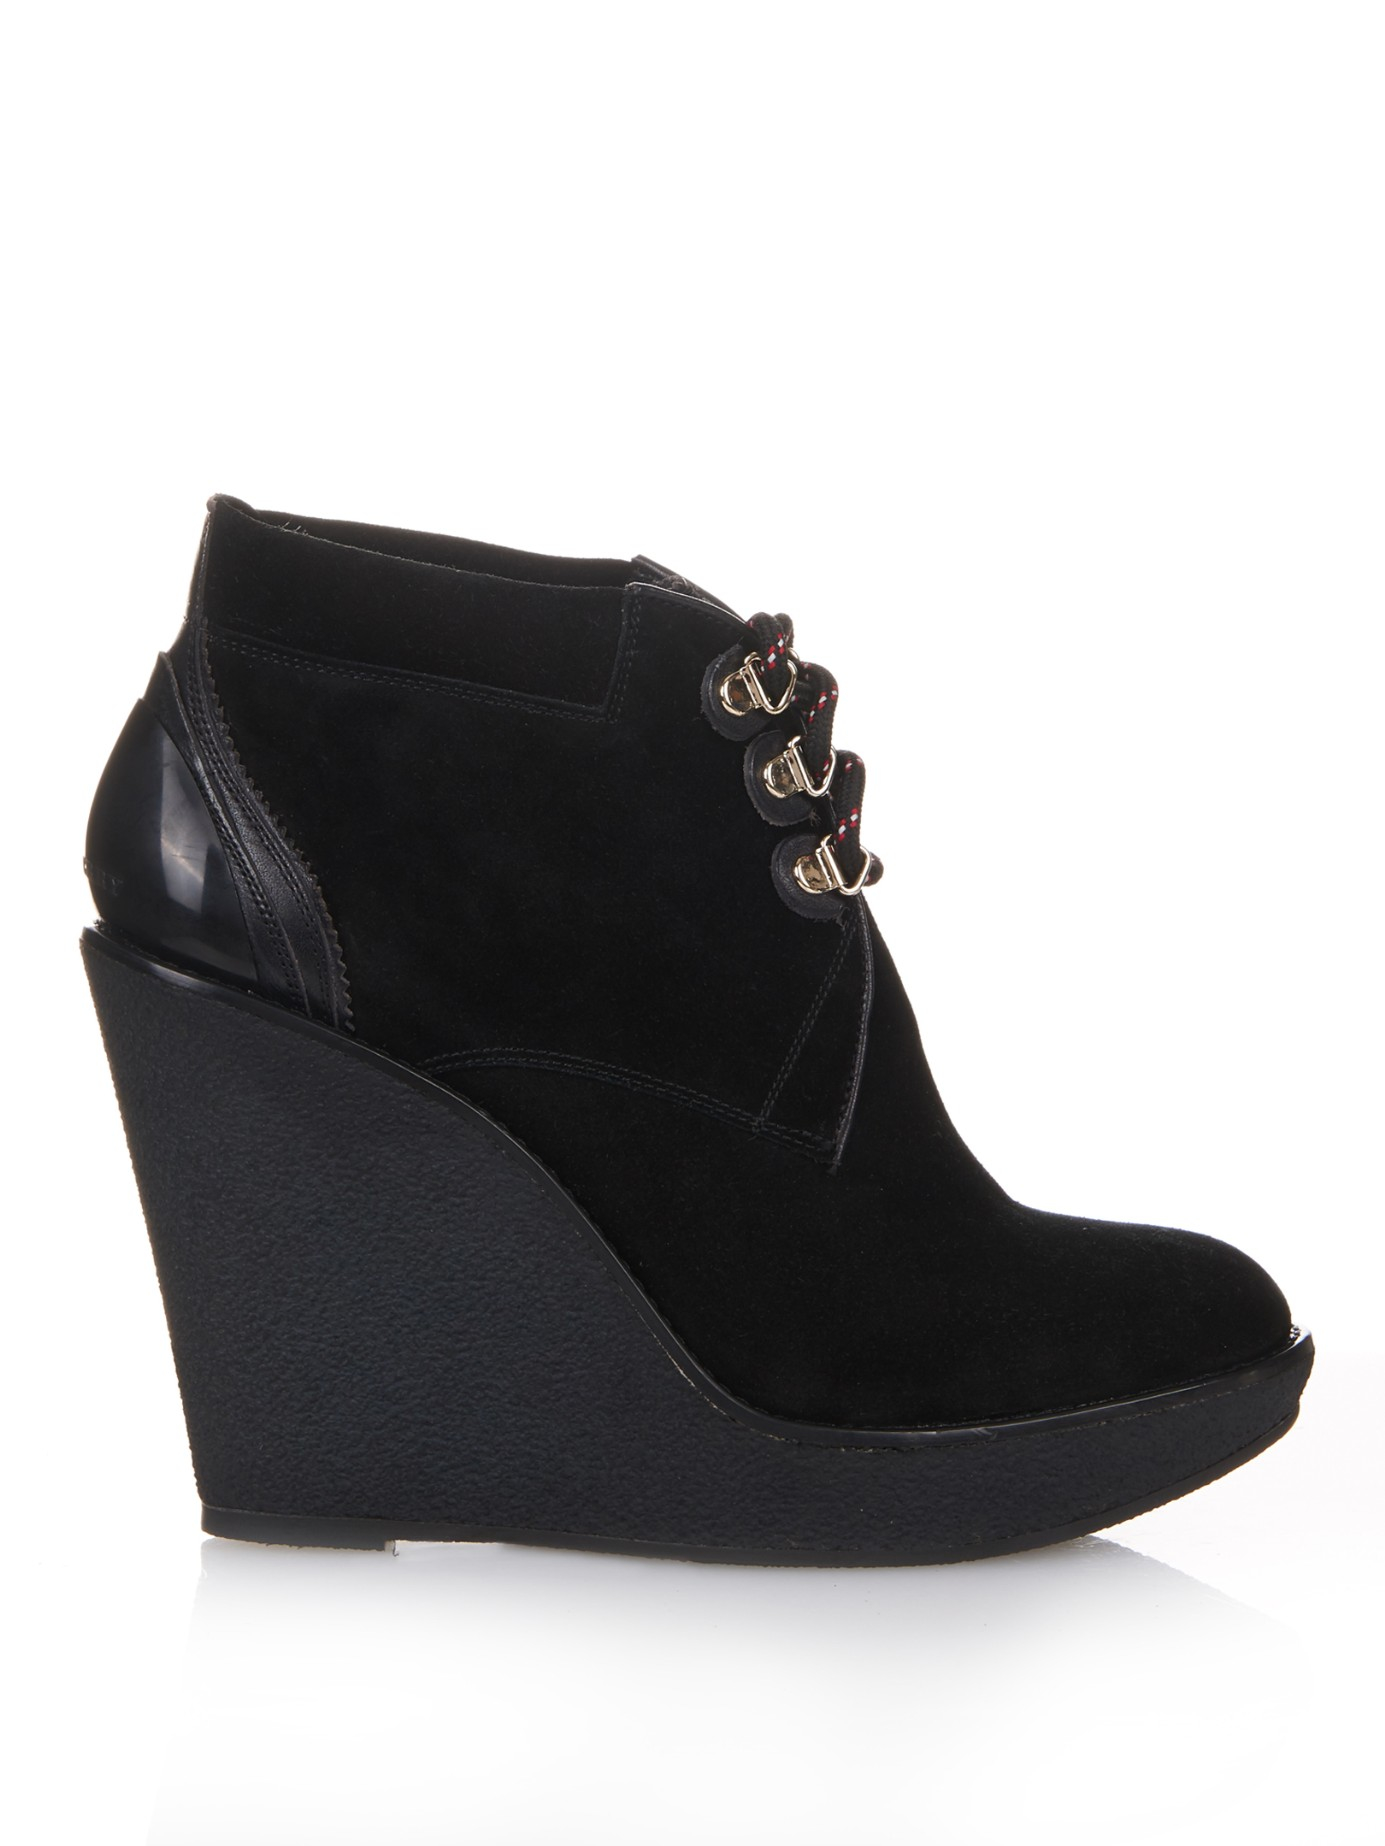 burberry suede and leather wedge boots in black lyst